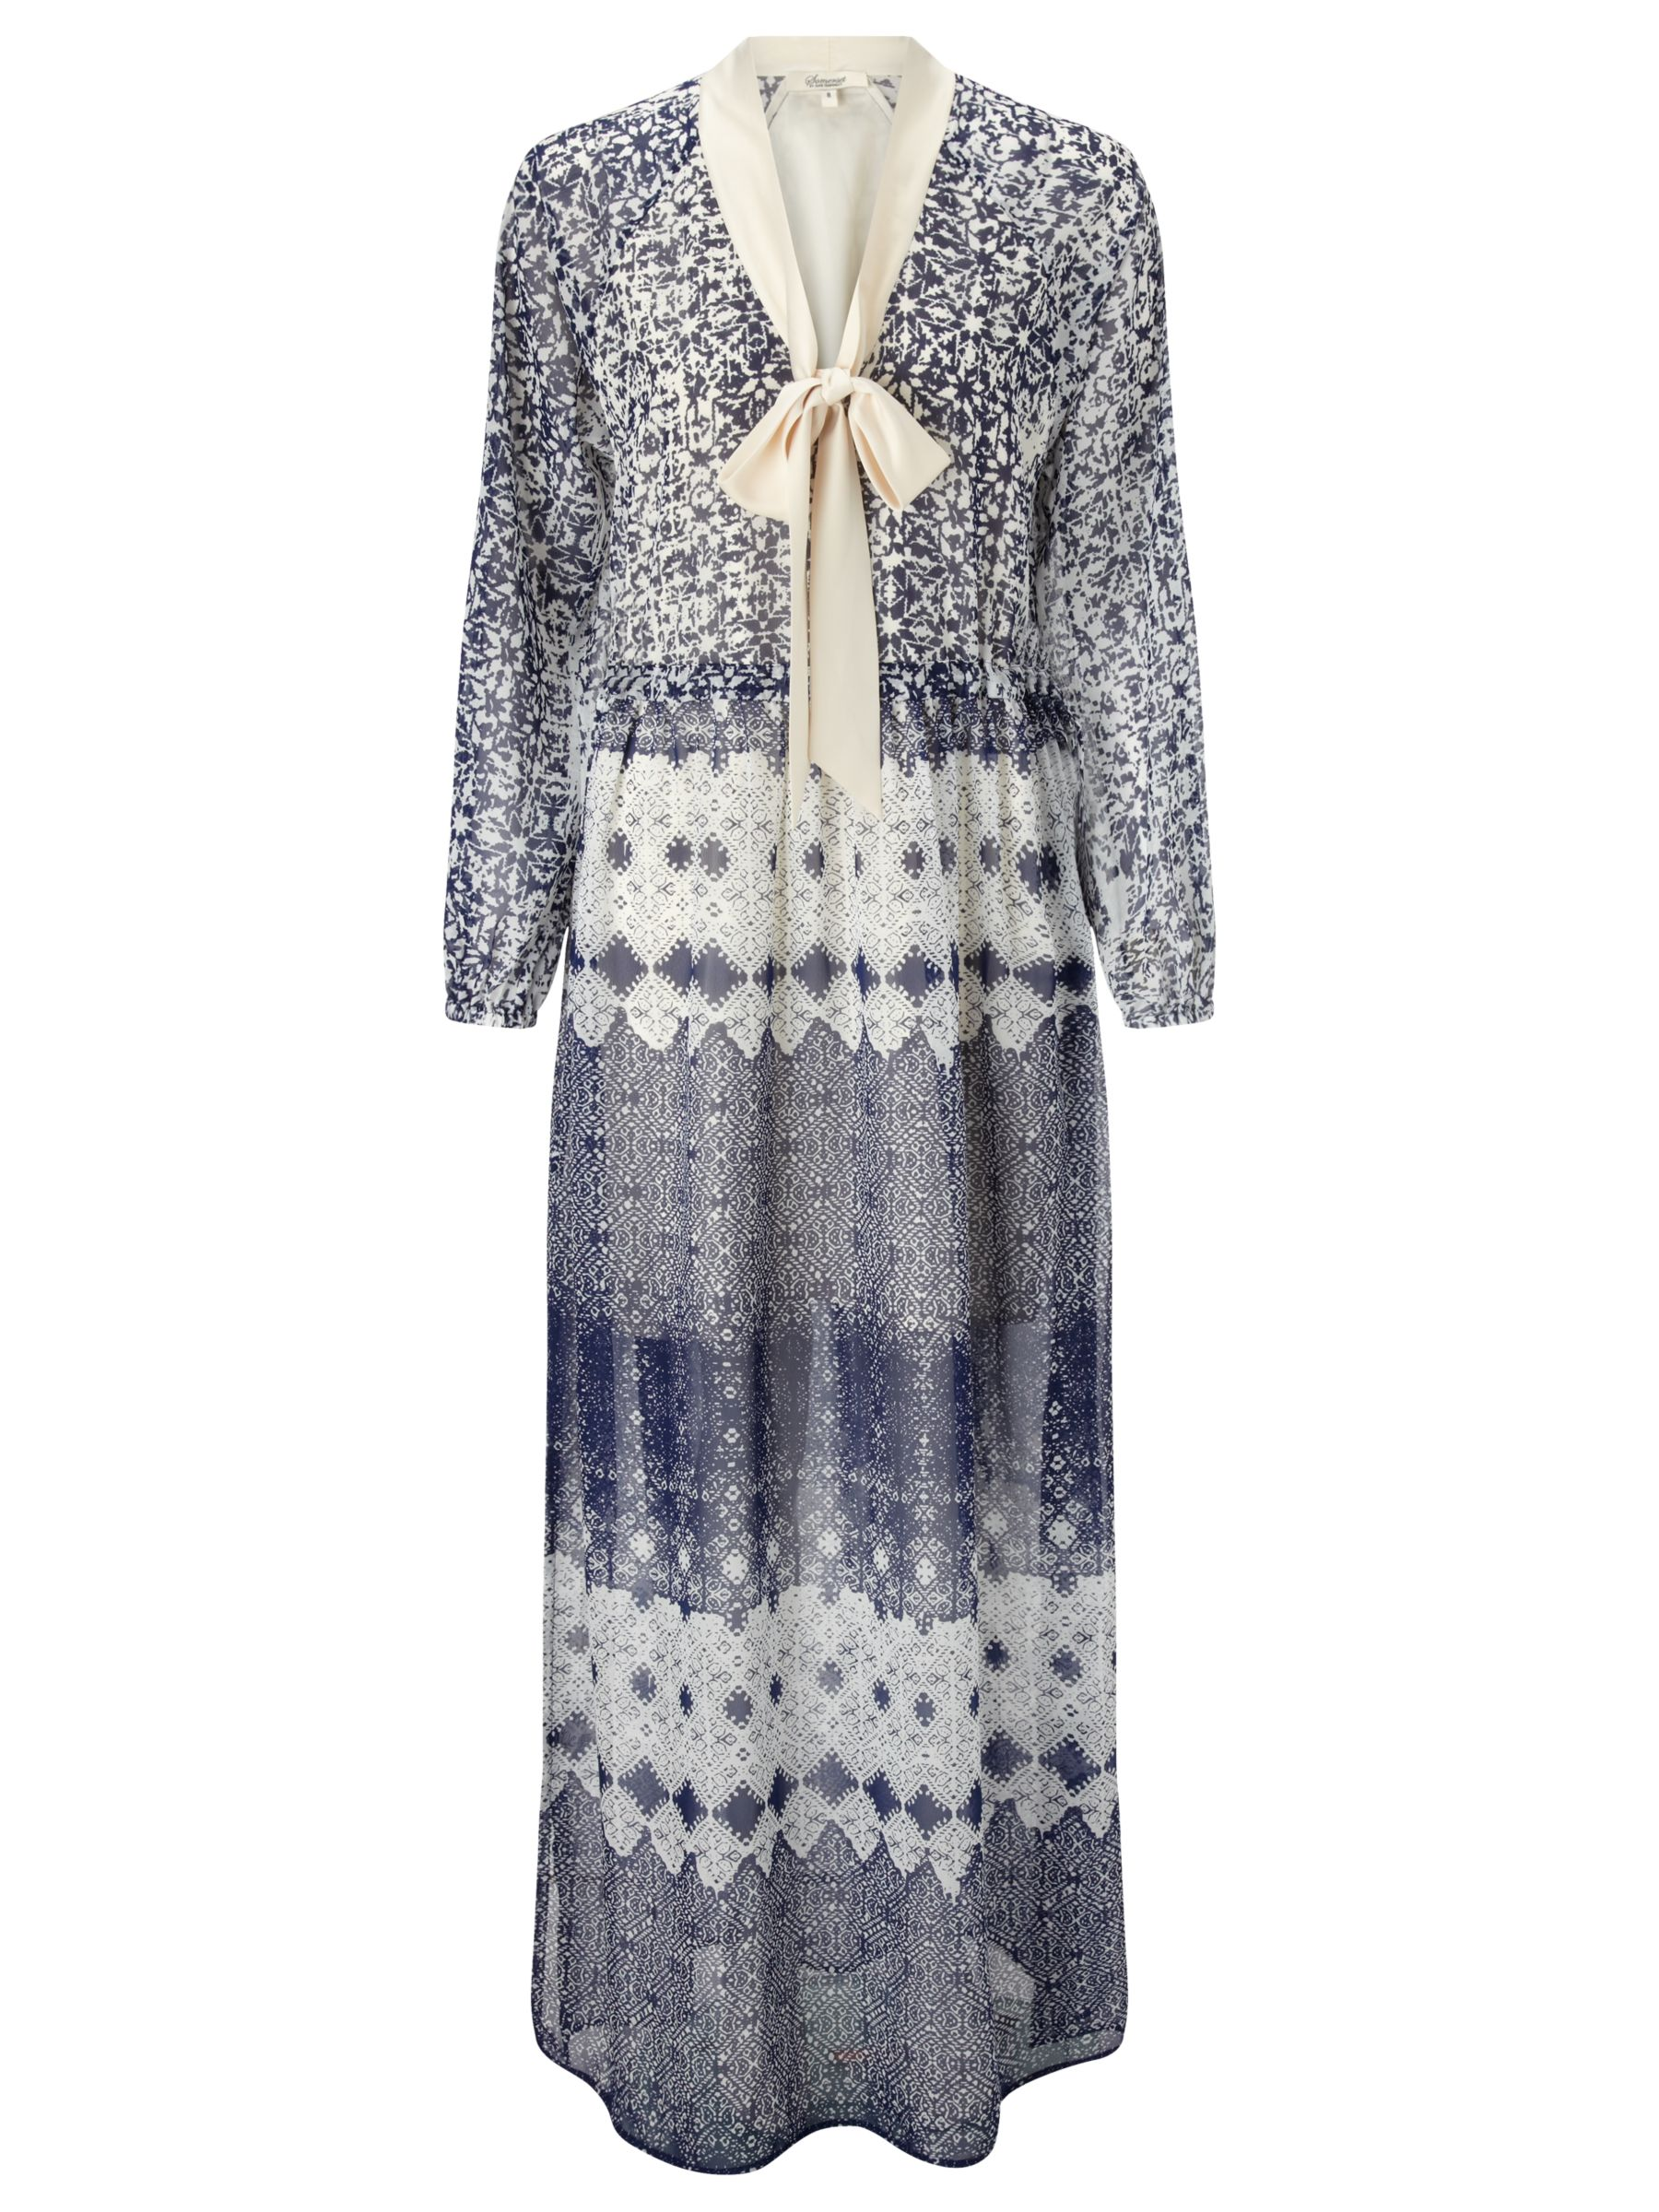 somerset by alice temperley tie waist tile maxi dress blue, somerset, alice, temperley, tie, waist, tile, maxi, dress, blue, somerset by alice temperley, 18|12|10|16|14|8|6, fashion magazine, the edit a seventies spring, women, womens dresses, brands l-z, 1819489